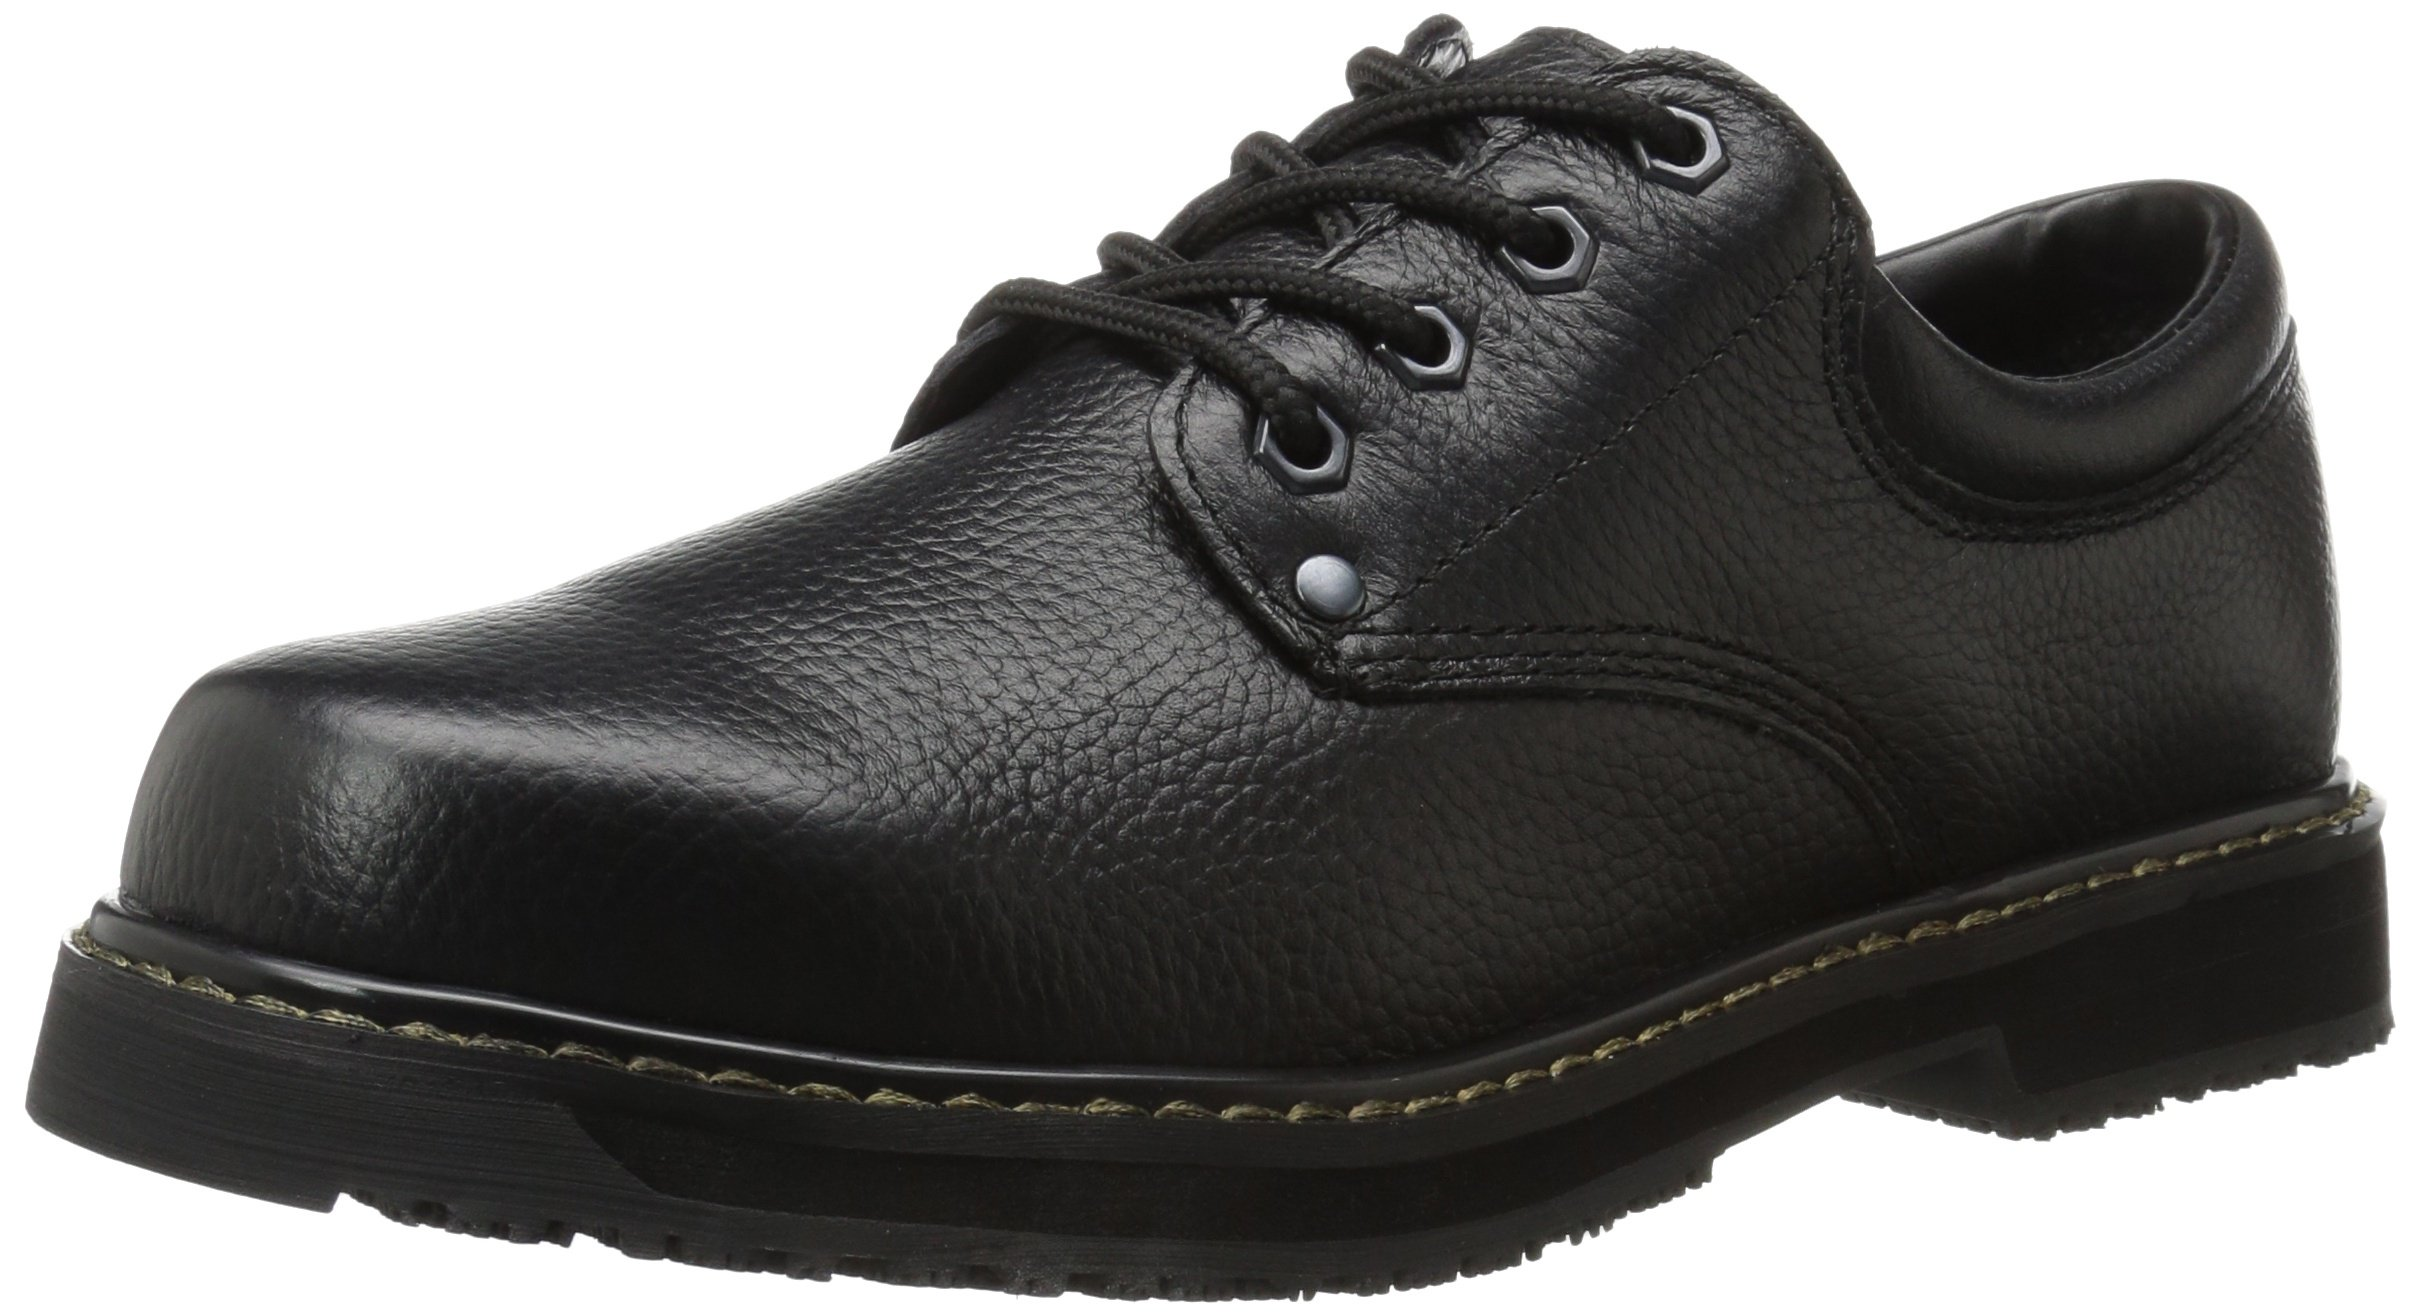 Dr. Scholl's Shoes Men's Harrington-M, Black, 10.5 M US